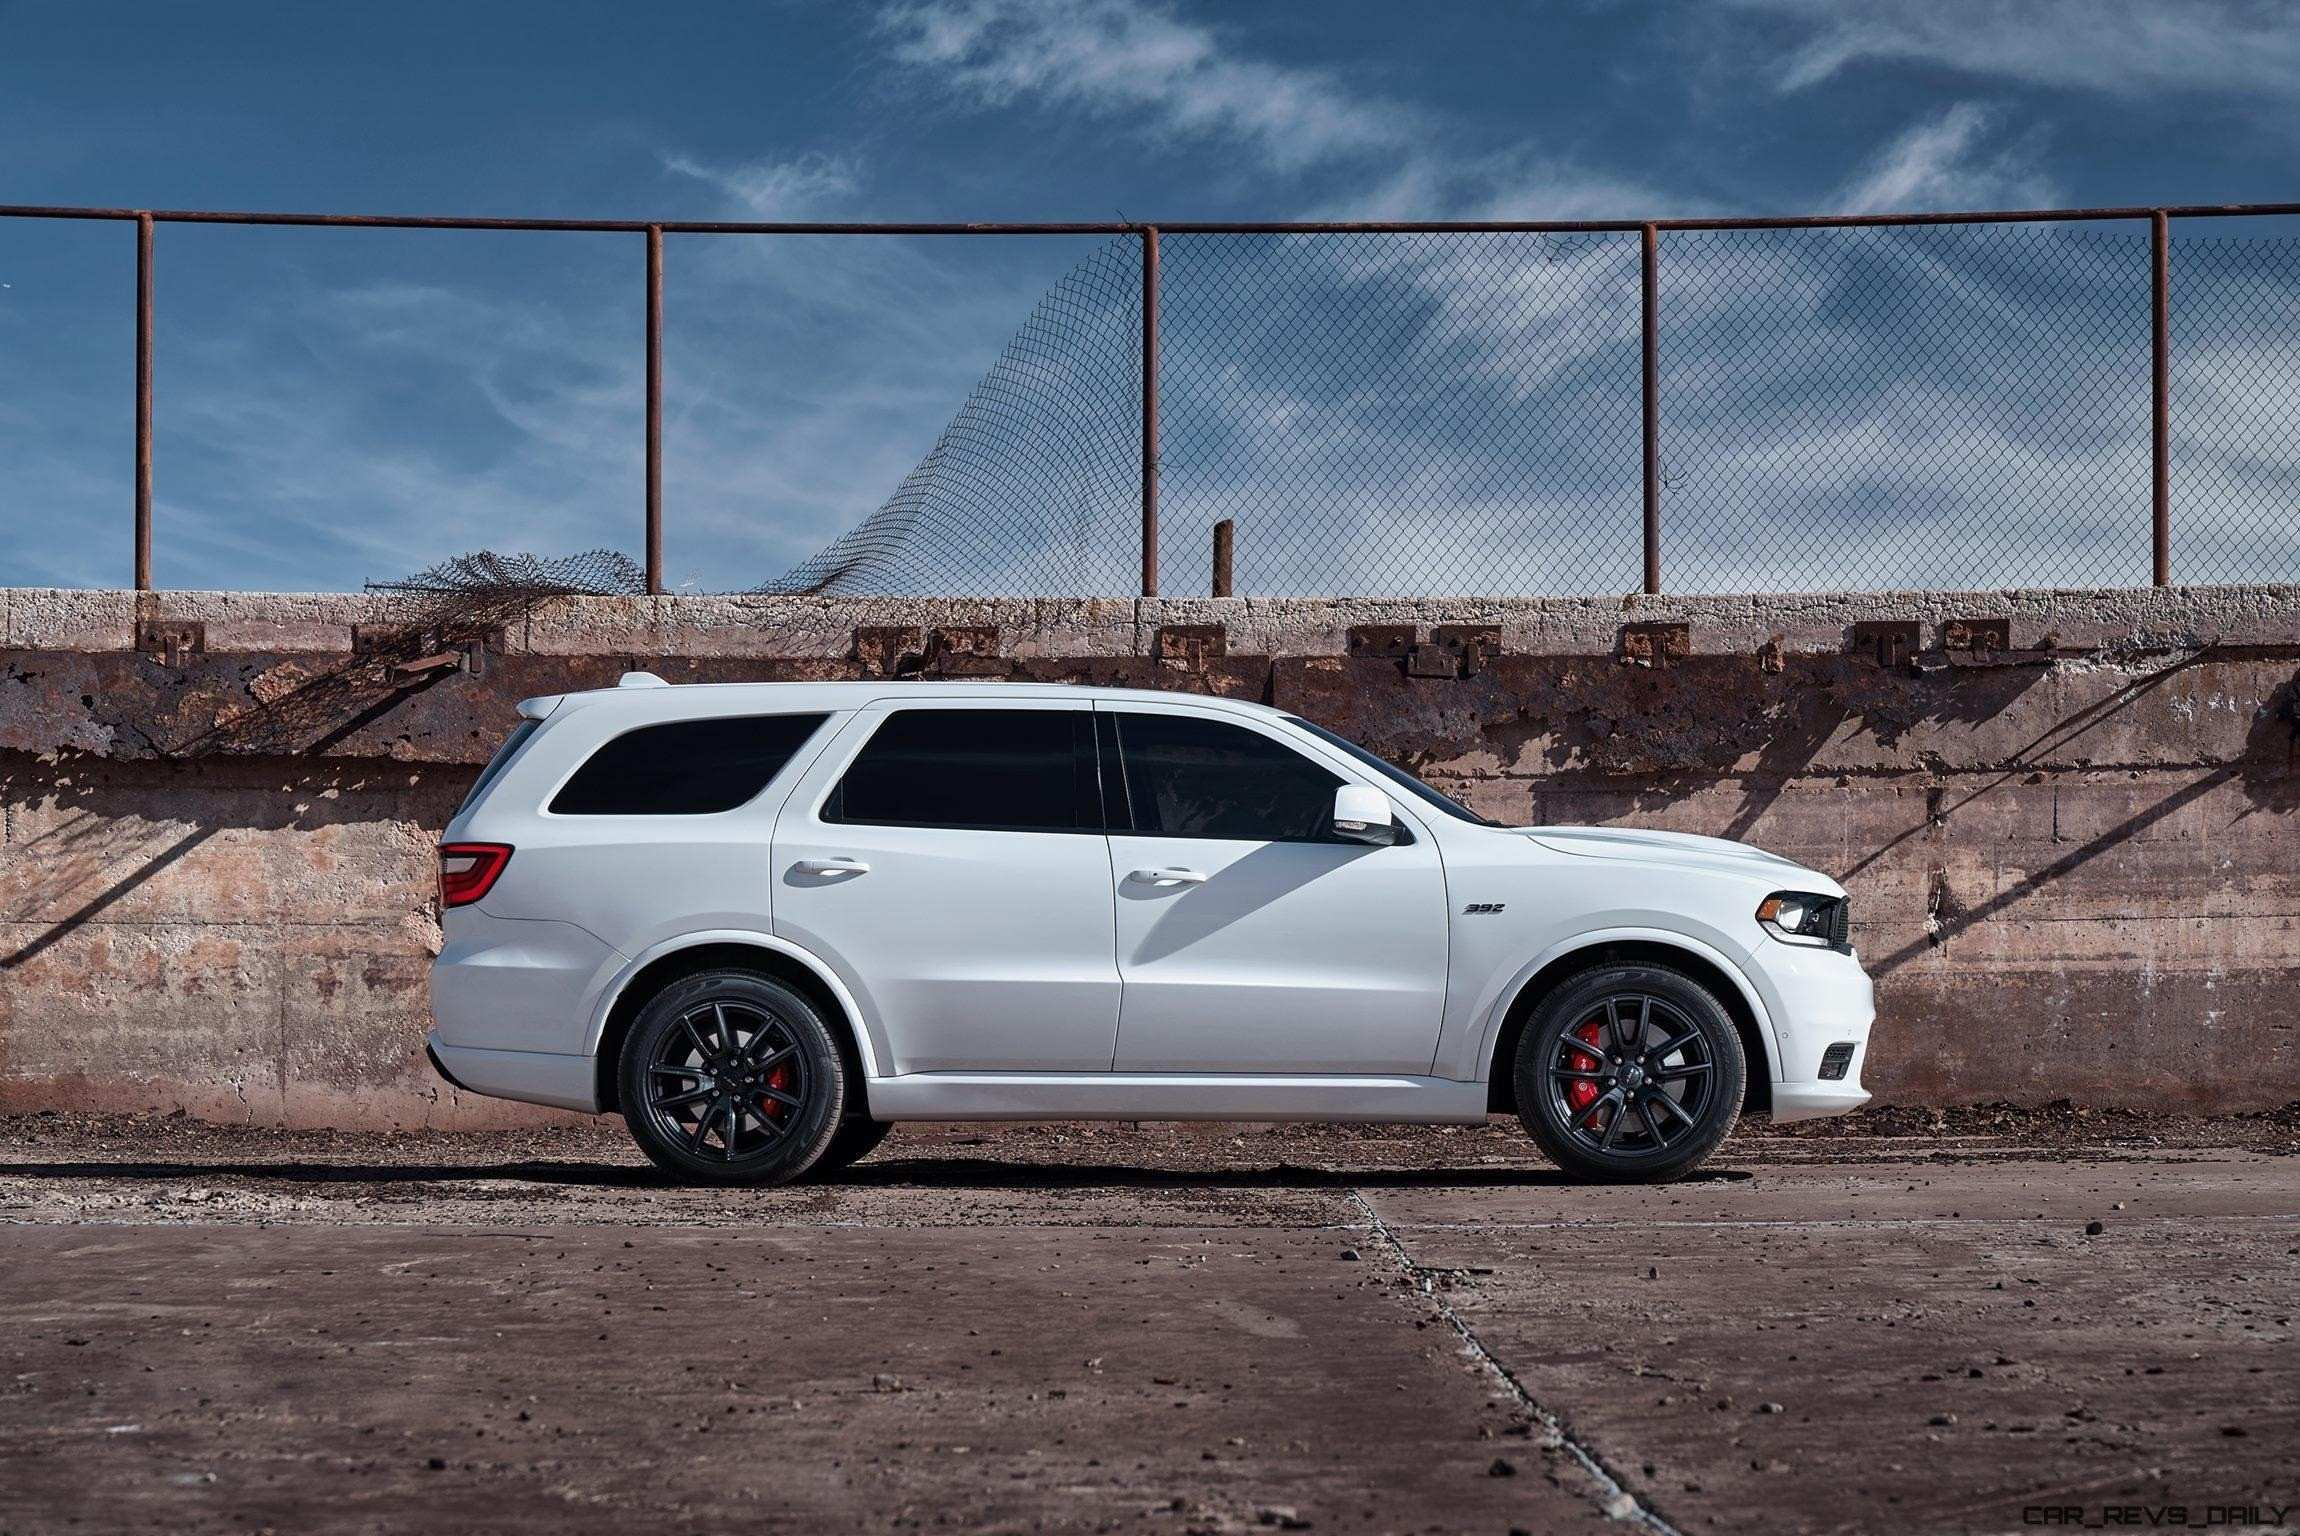 62 A 2019 Dodge Durango Diesel Srt8 Picture